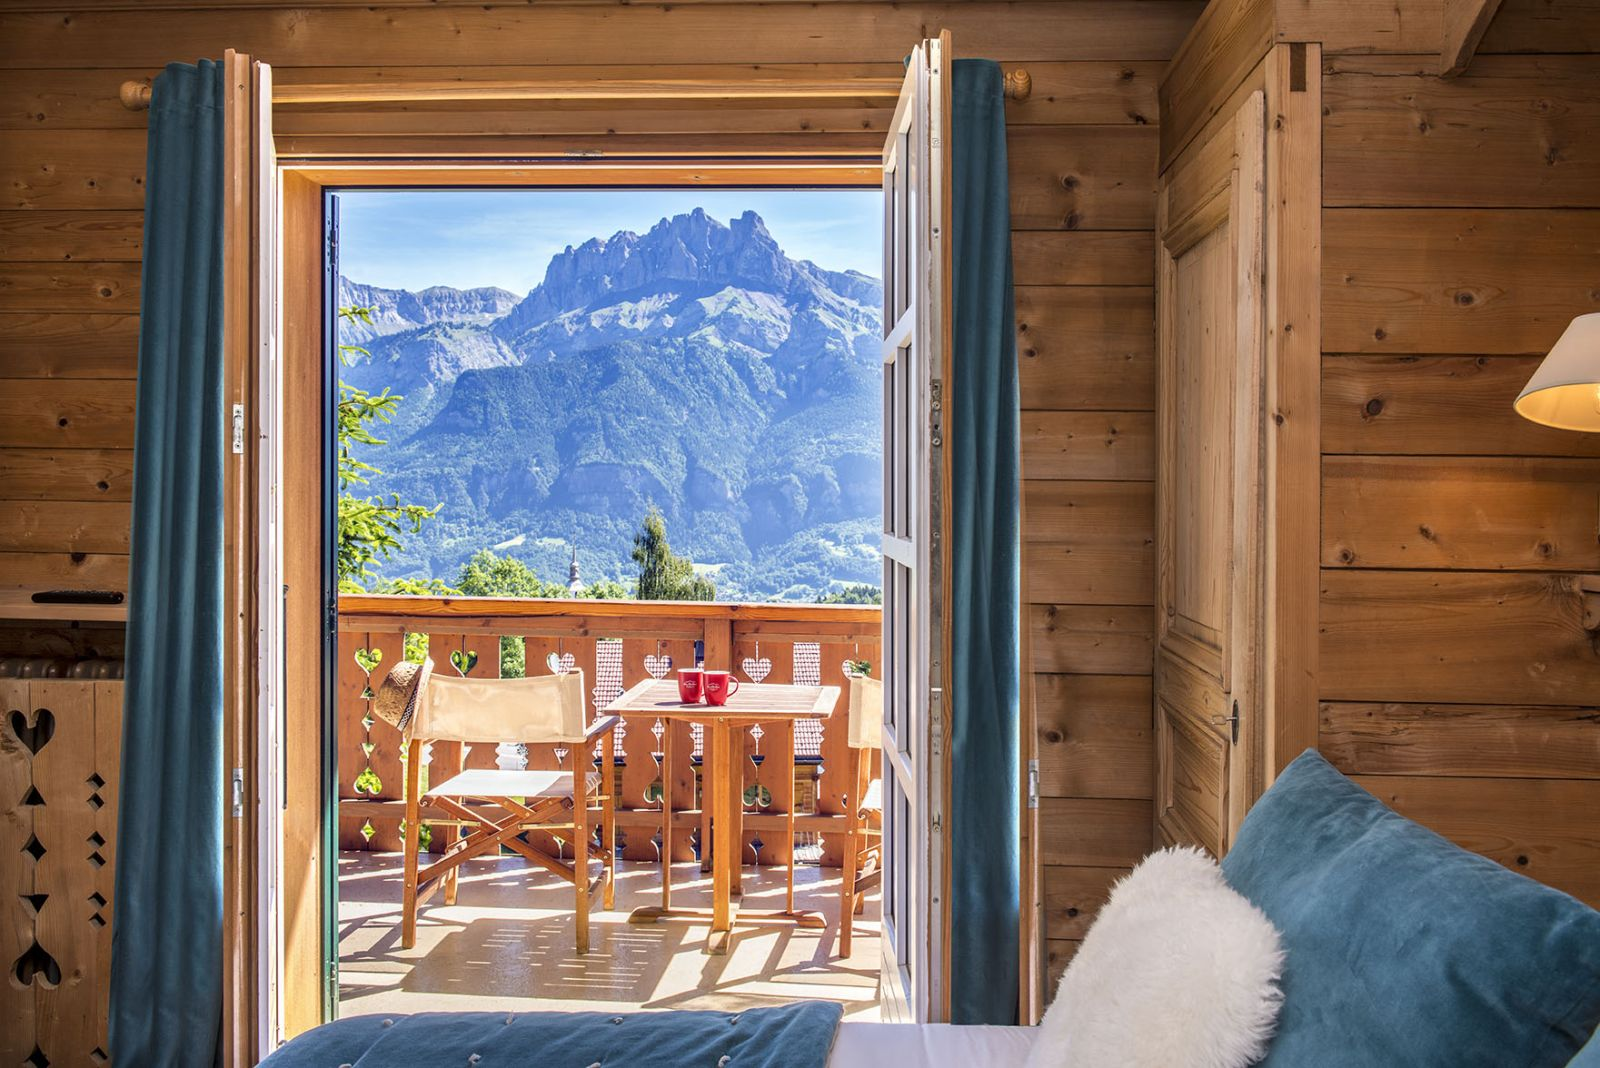 481/Photos/Living_Hotels/Les_Roches/hotel-les-roches-chambre-deluxe-vue-mont-blanc-b.jpg